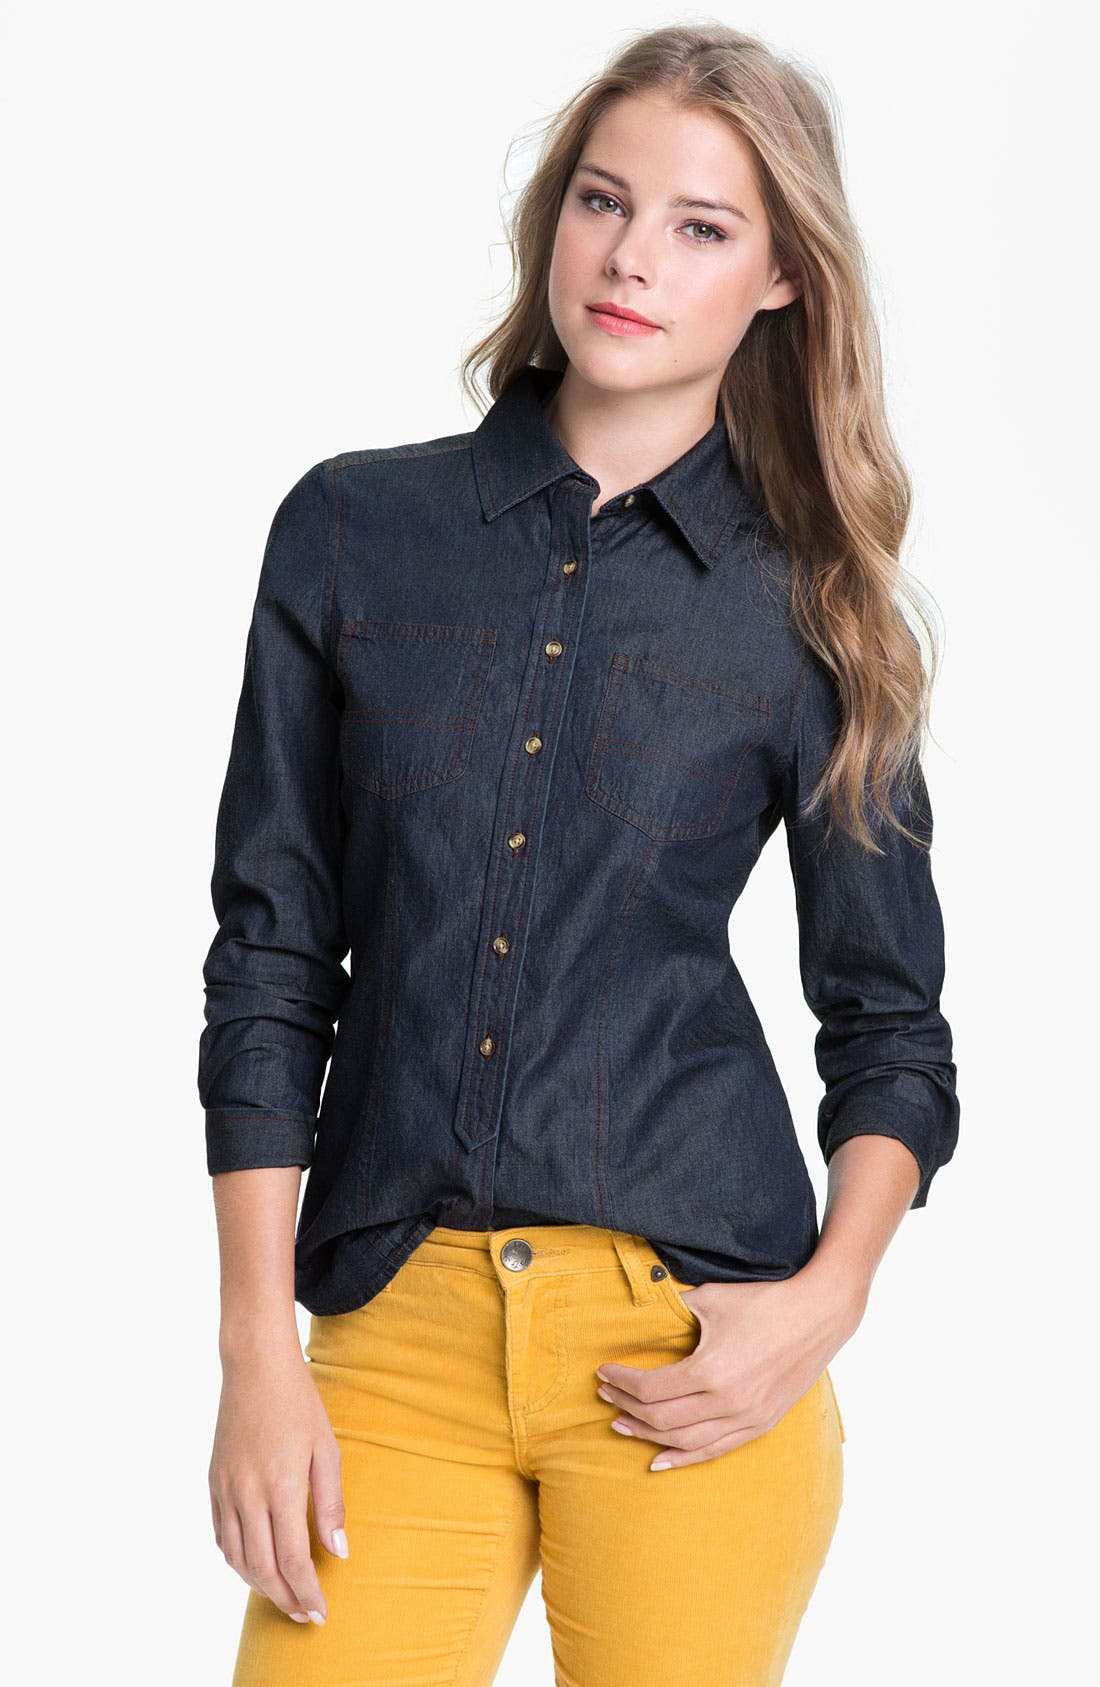 Main Image - Pendleton Denim Shirt (Online Exclusive)